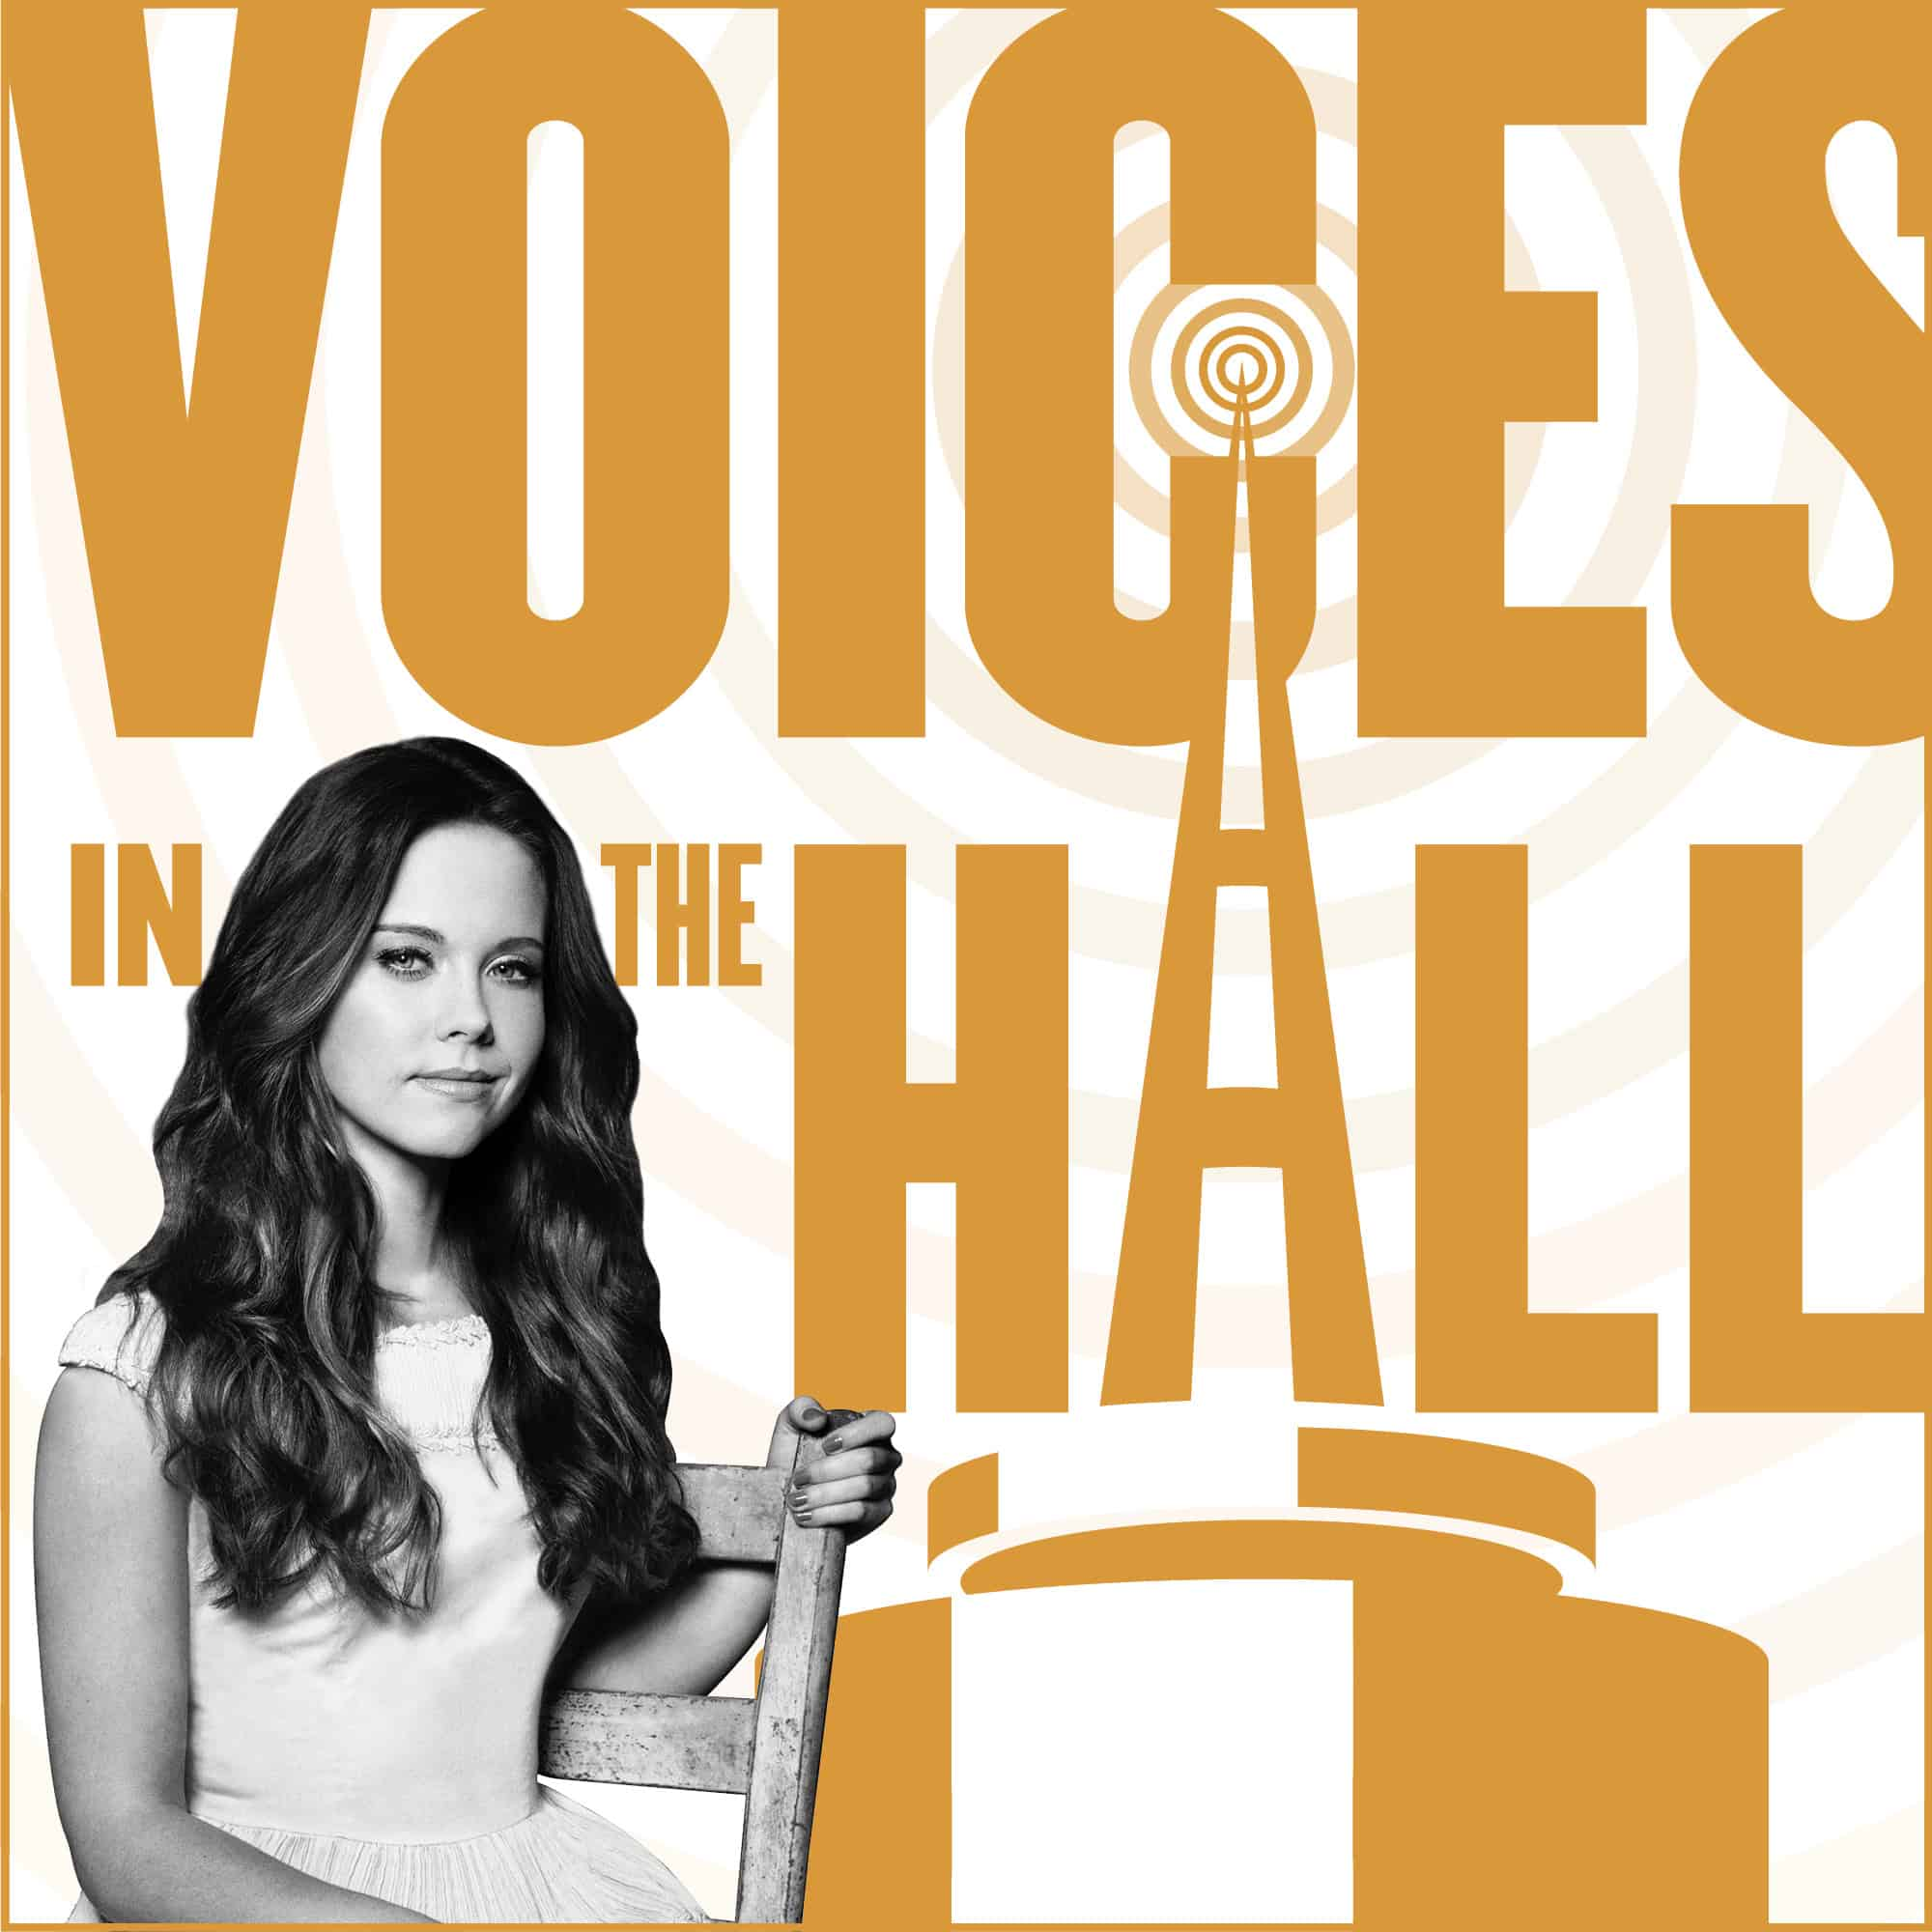 Voices In The Hall _Website Series_SierraHull_Square2